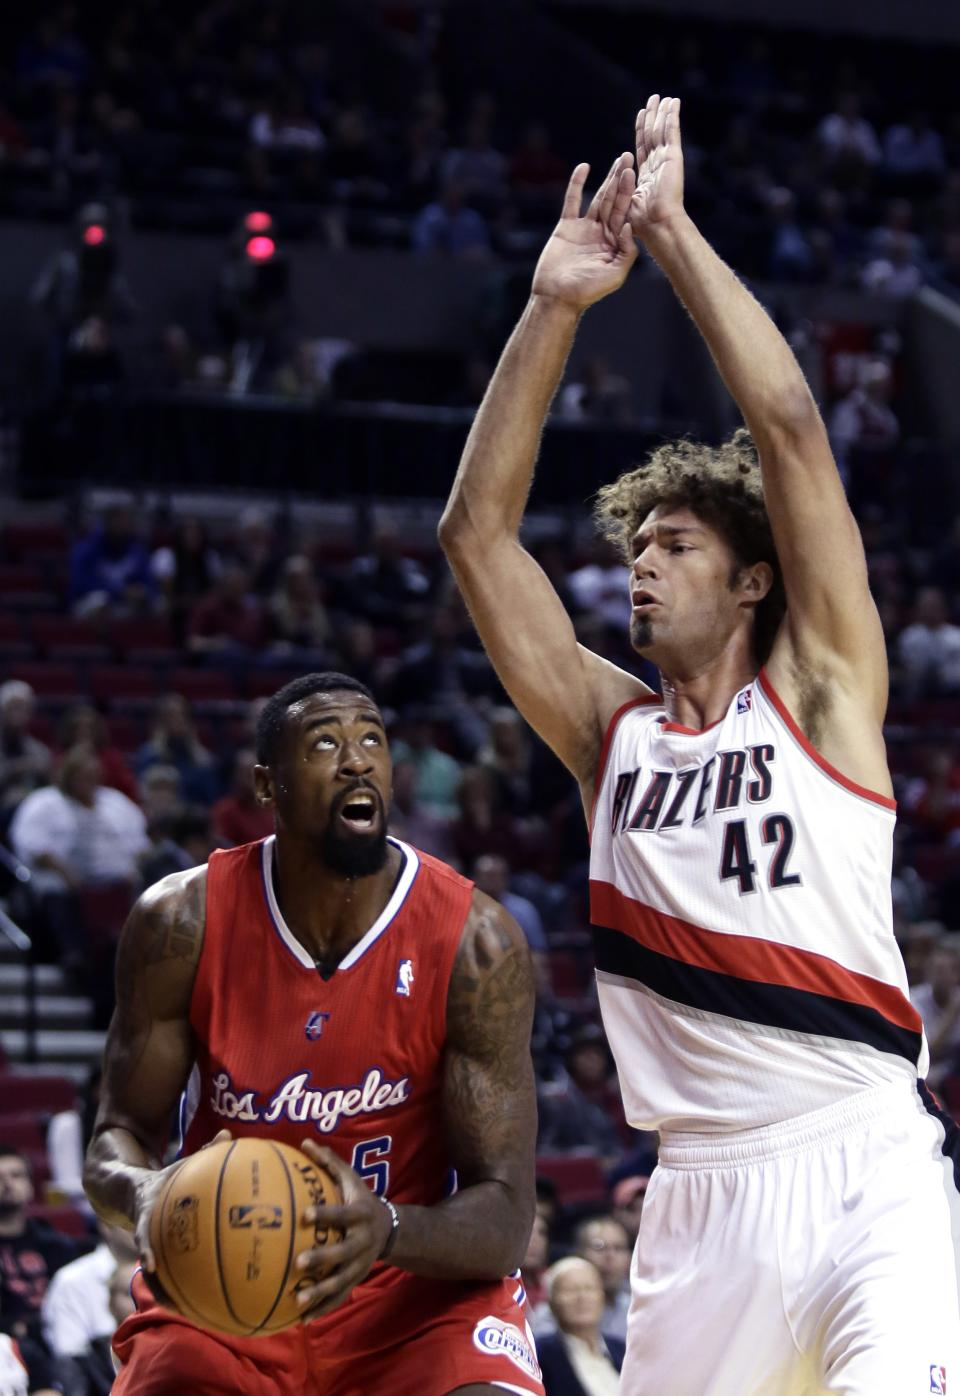 Clippers down Blazers 89-81 in preseason opener